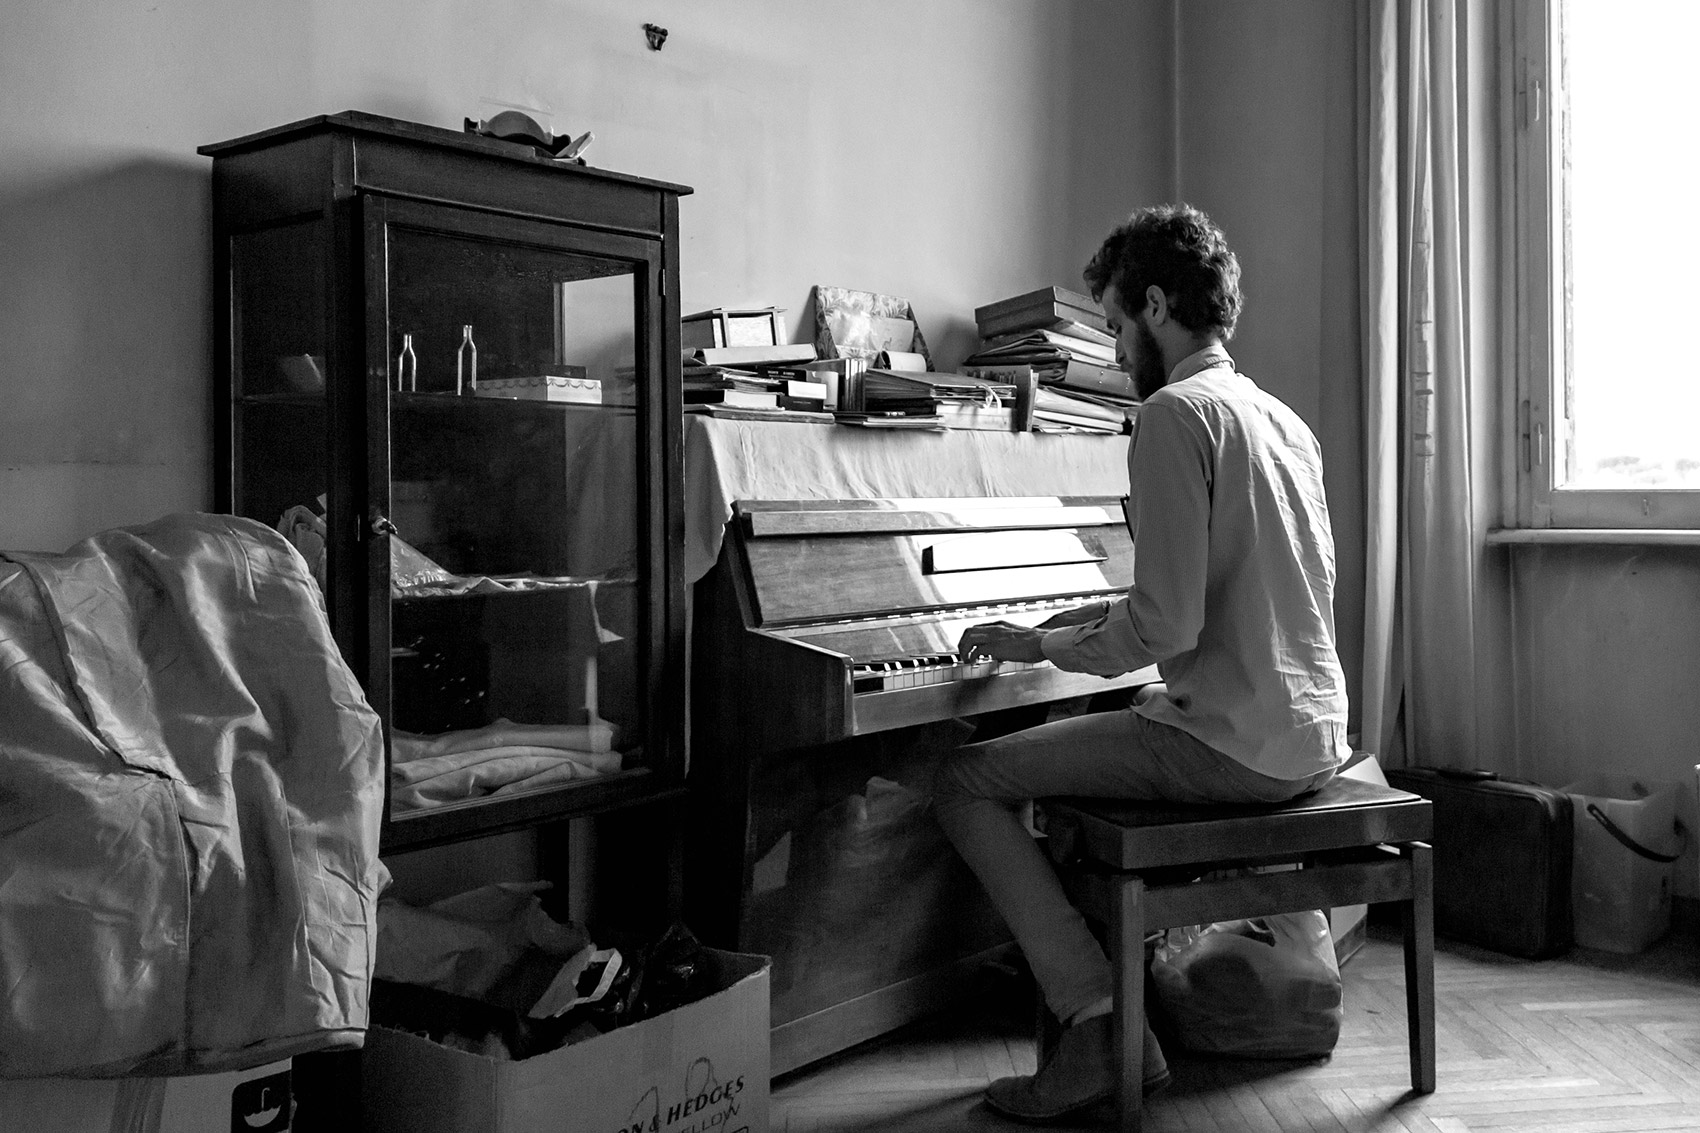 Playing Piano, Piano. Piano, in Italian, means slowly, or quiet.